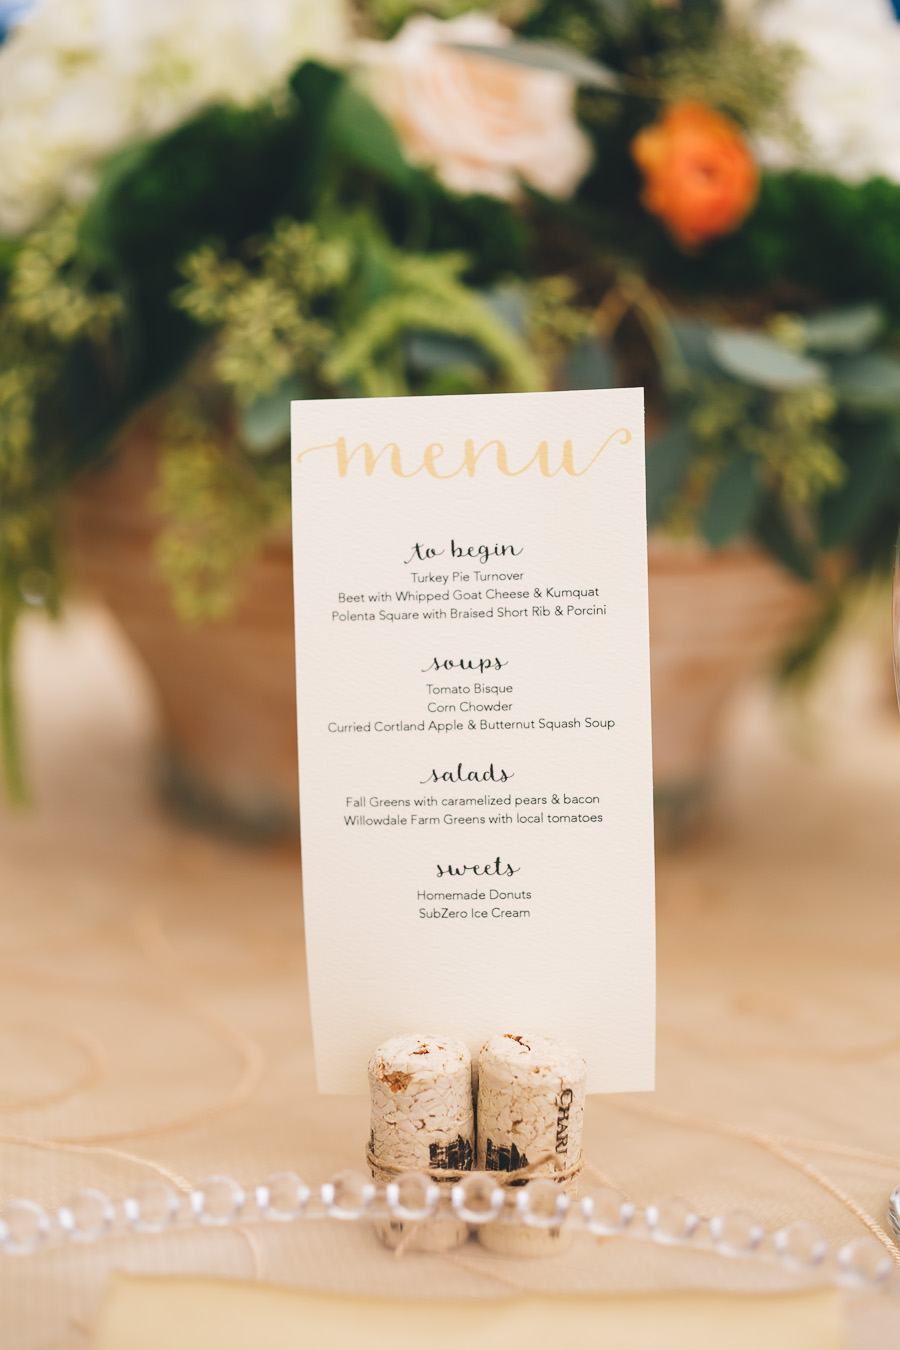 wedding menu - photo by Leona Campbell Photography http://ruffledblog.com/fall-wedding-inspiration-from-the-big-fake-wedding